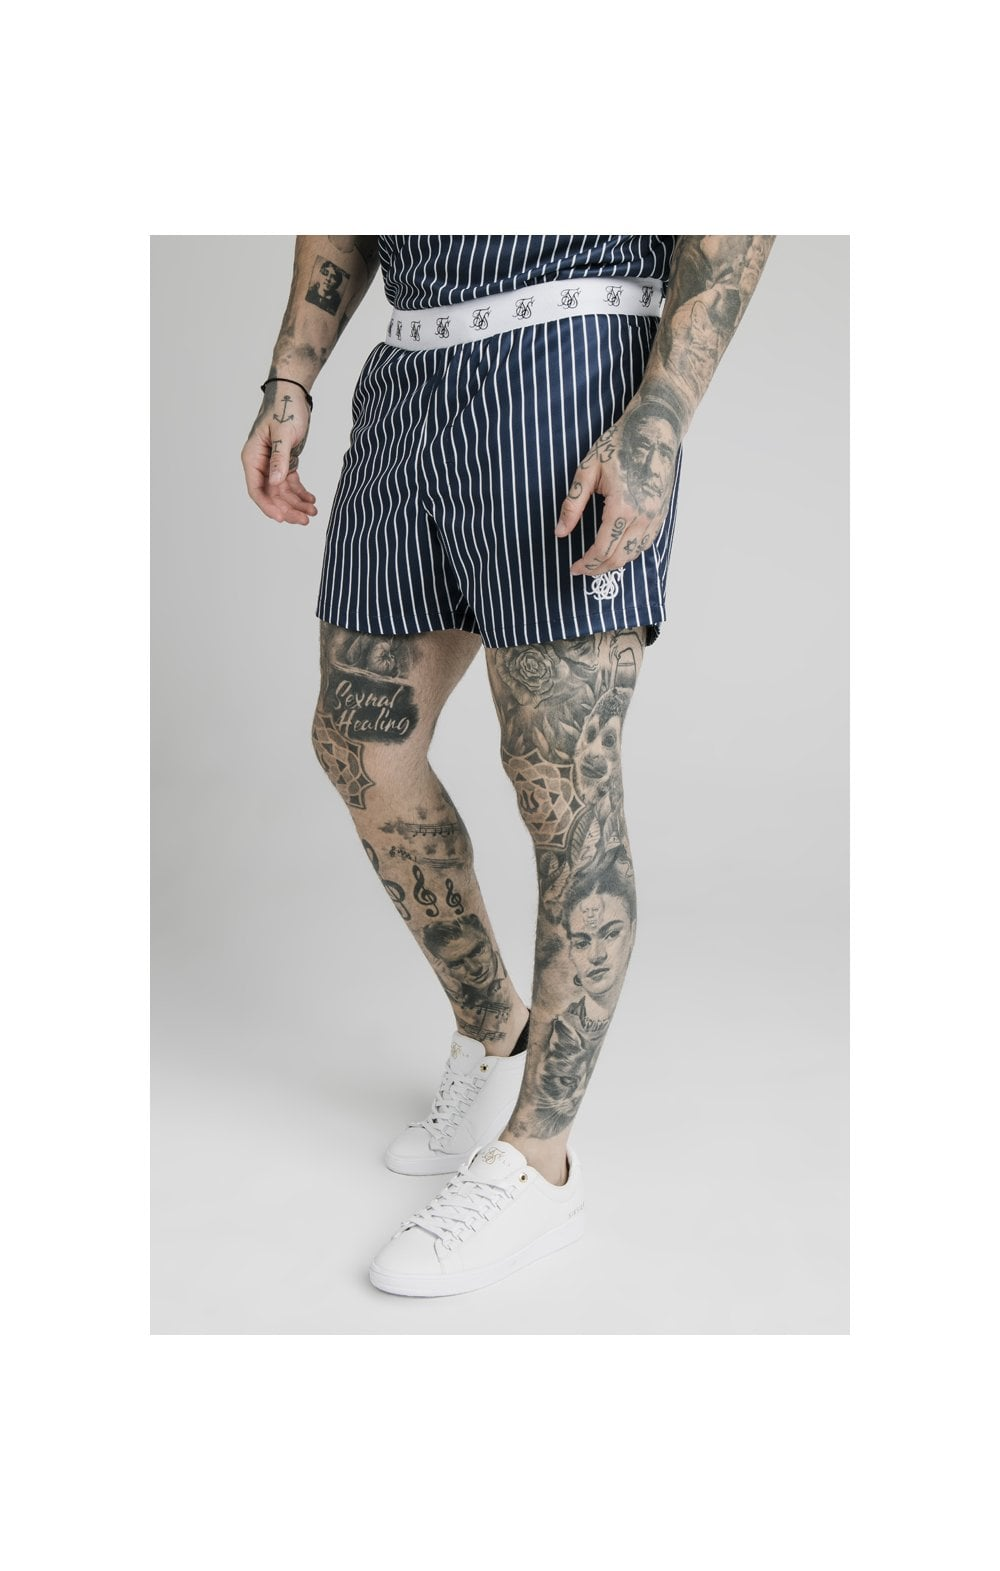 SikSilk Eyelet Elasticated Swim Shorts - Navy & White (1)